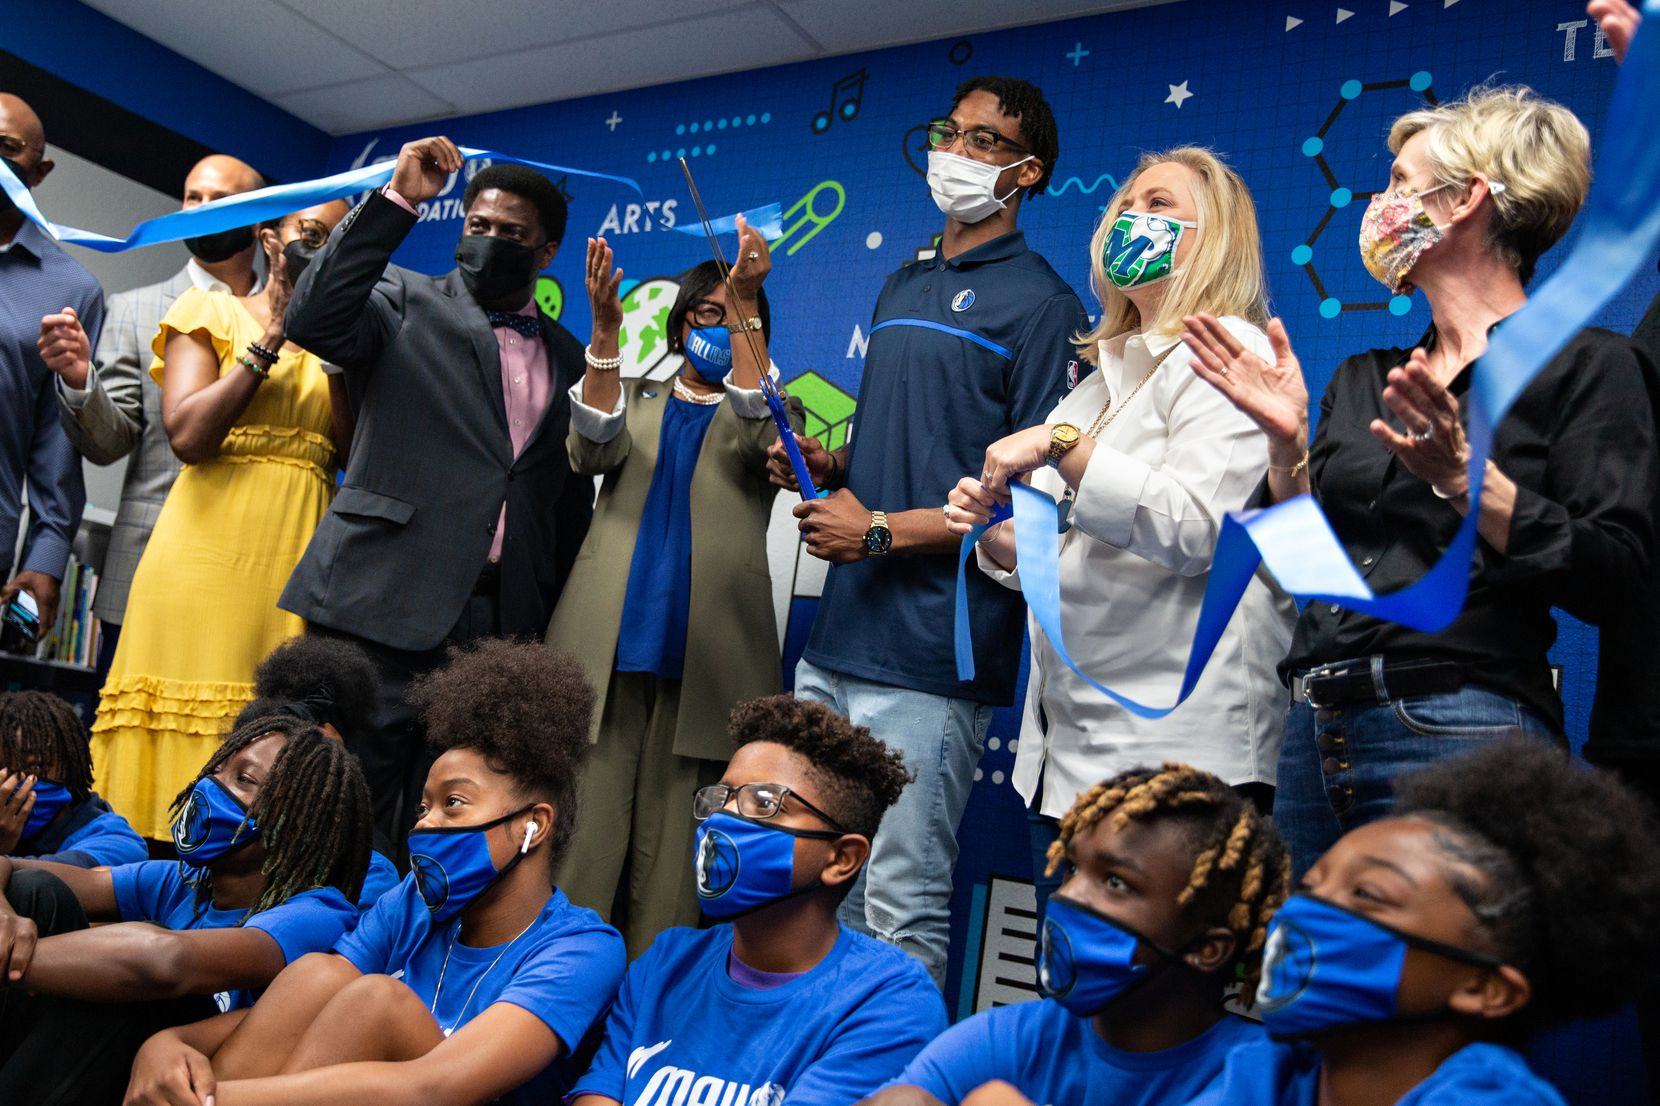 Dallas Mavericks guard Nate Hinton cuts the ribbon at the Mavs Foundation's unveiling of its newest reading and learning center renovation at the Moorland YMCA at Oak Cliff on August 3, 2021. (Shelby Tauber / Special Contributor)